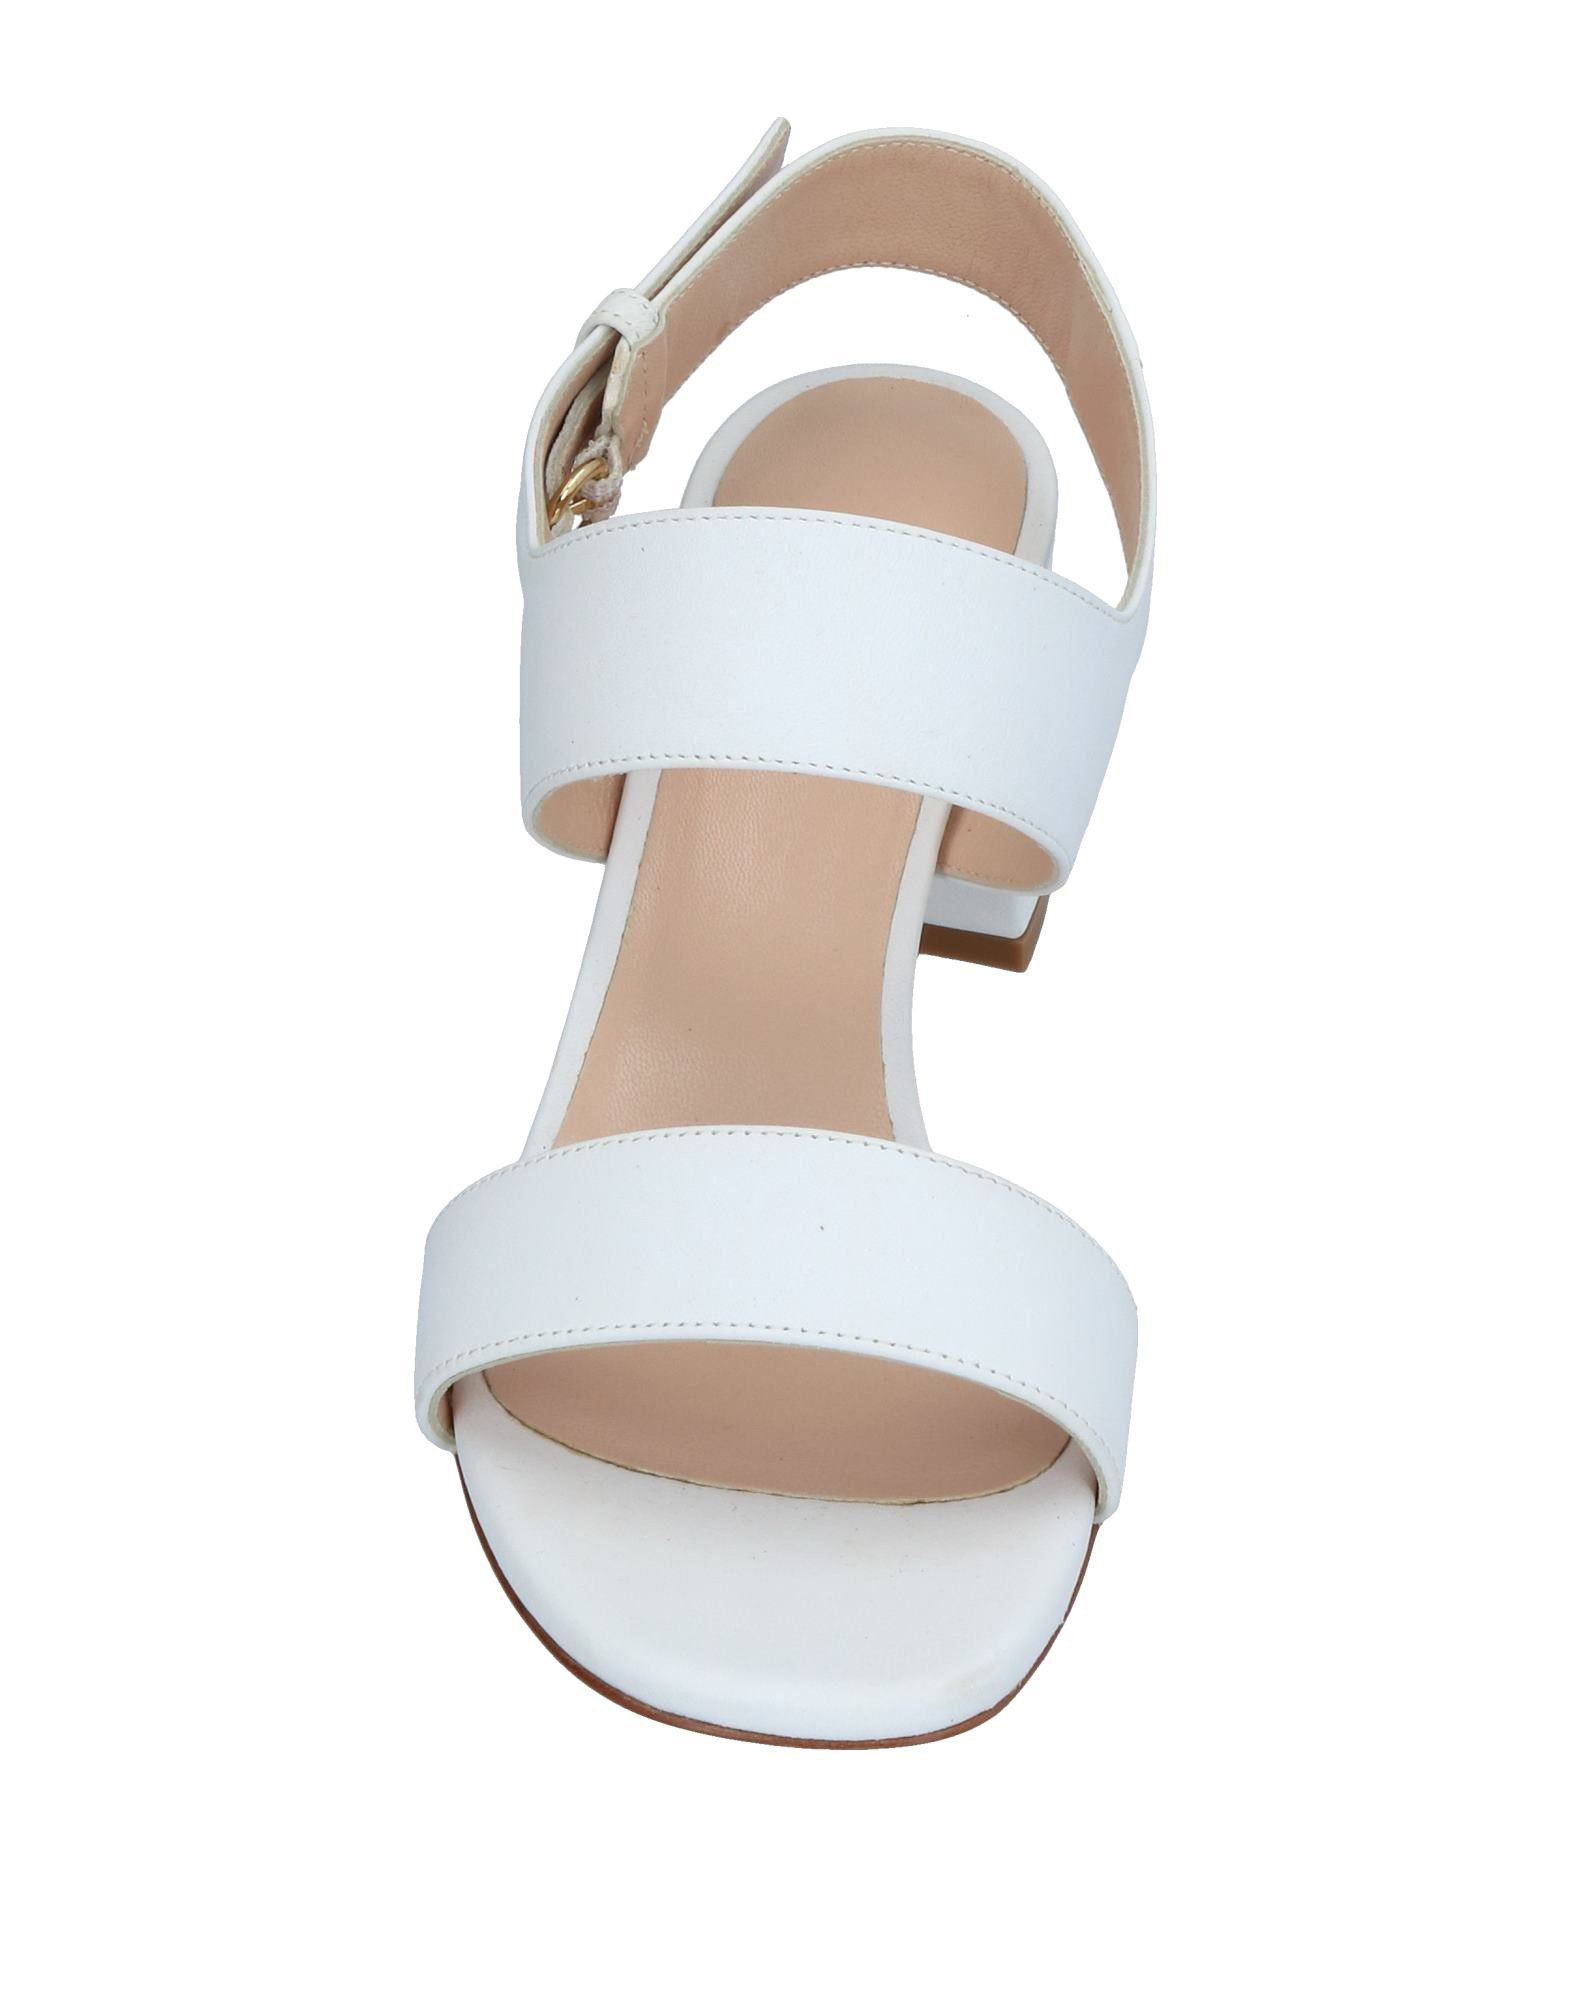 CHAUSSURES - SandalesStella Sofia H6gSmhp